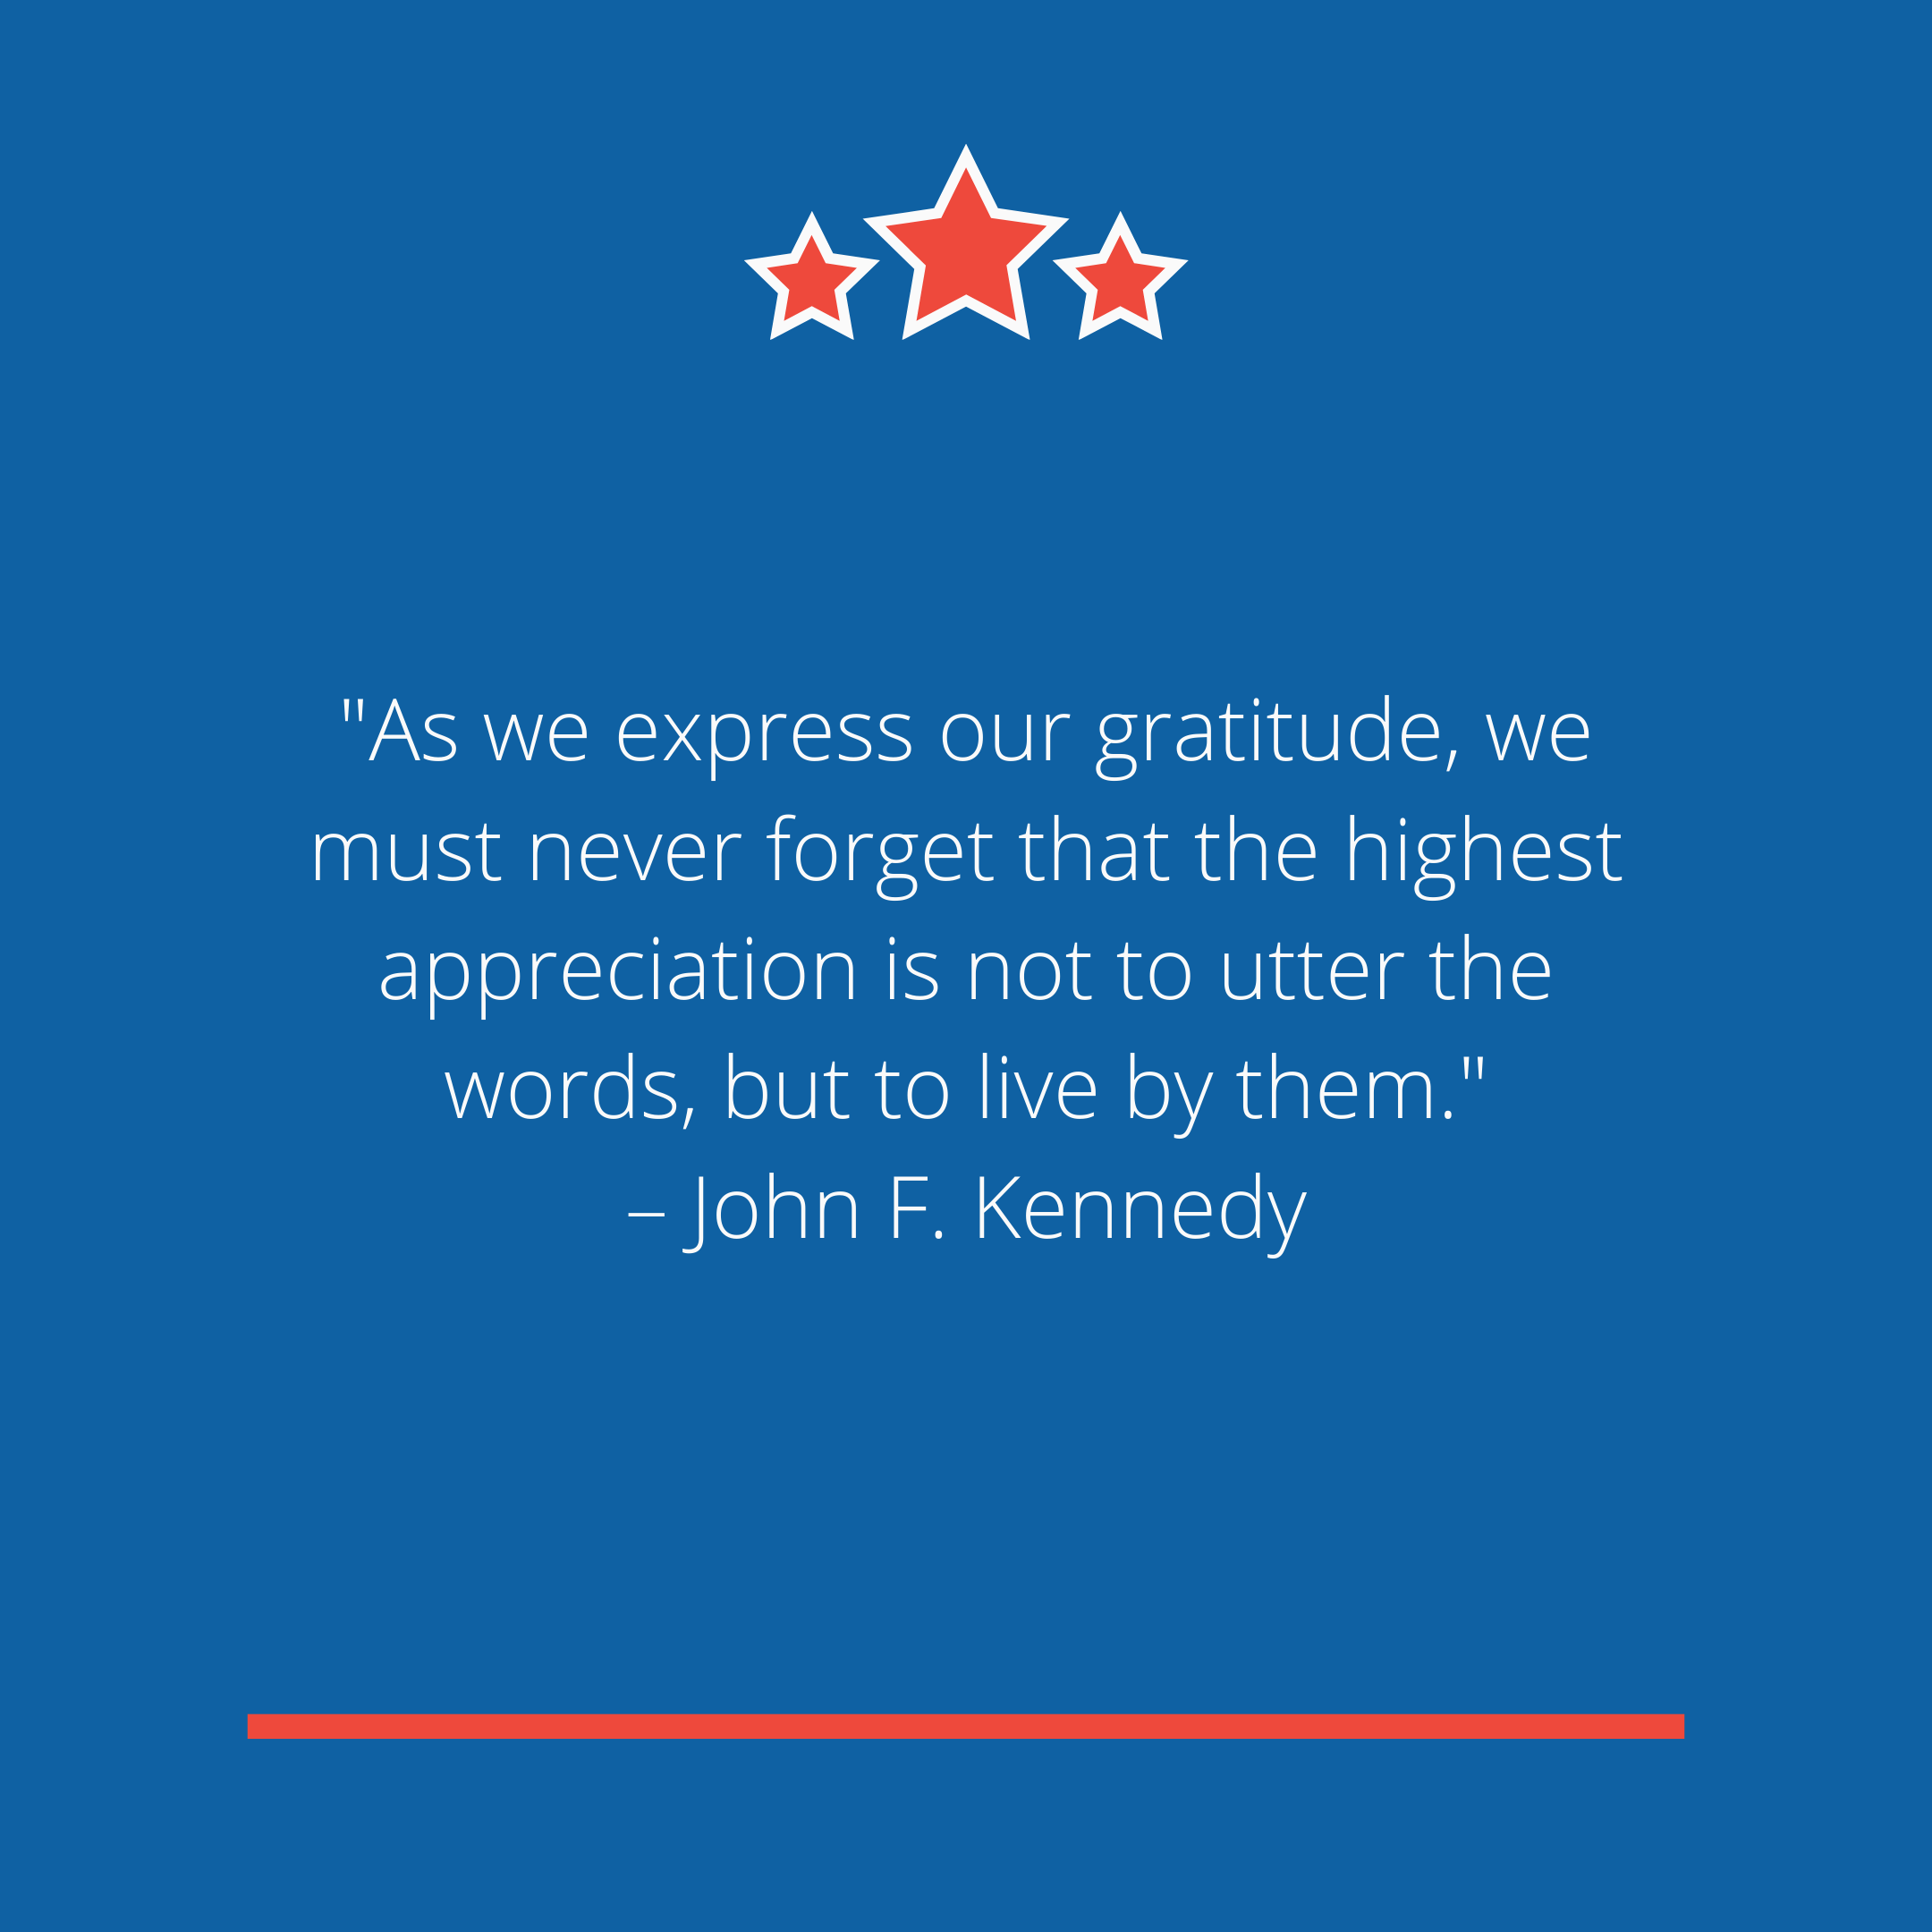 """As we express our gratitude, we must never forget that the highest appreciation is not to utter the words, but to live by them."" –John F. Kennedy"